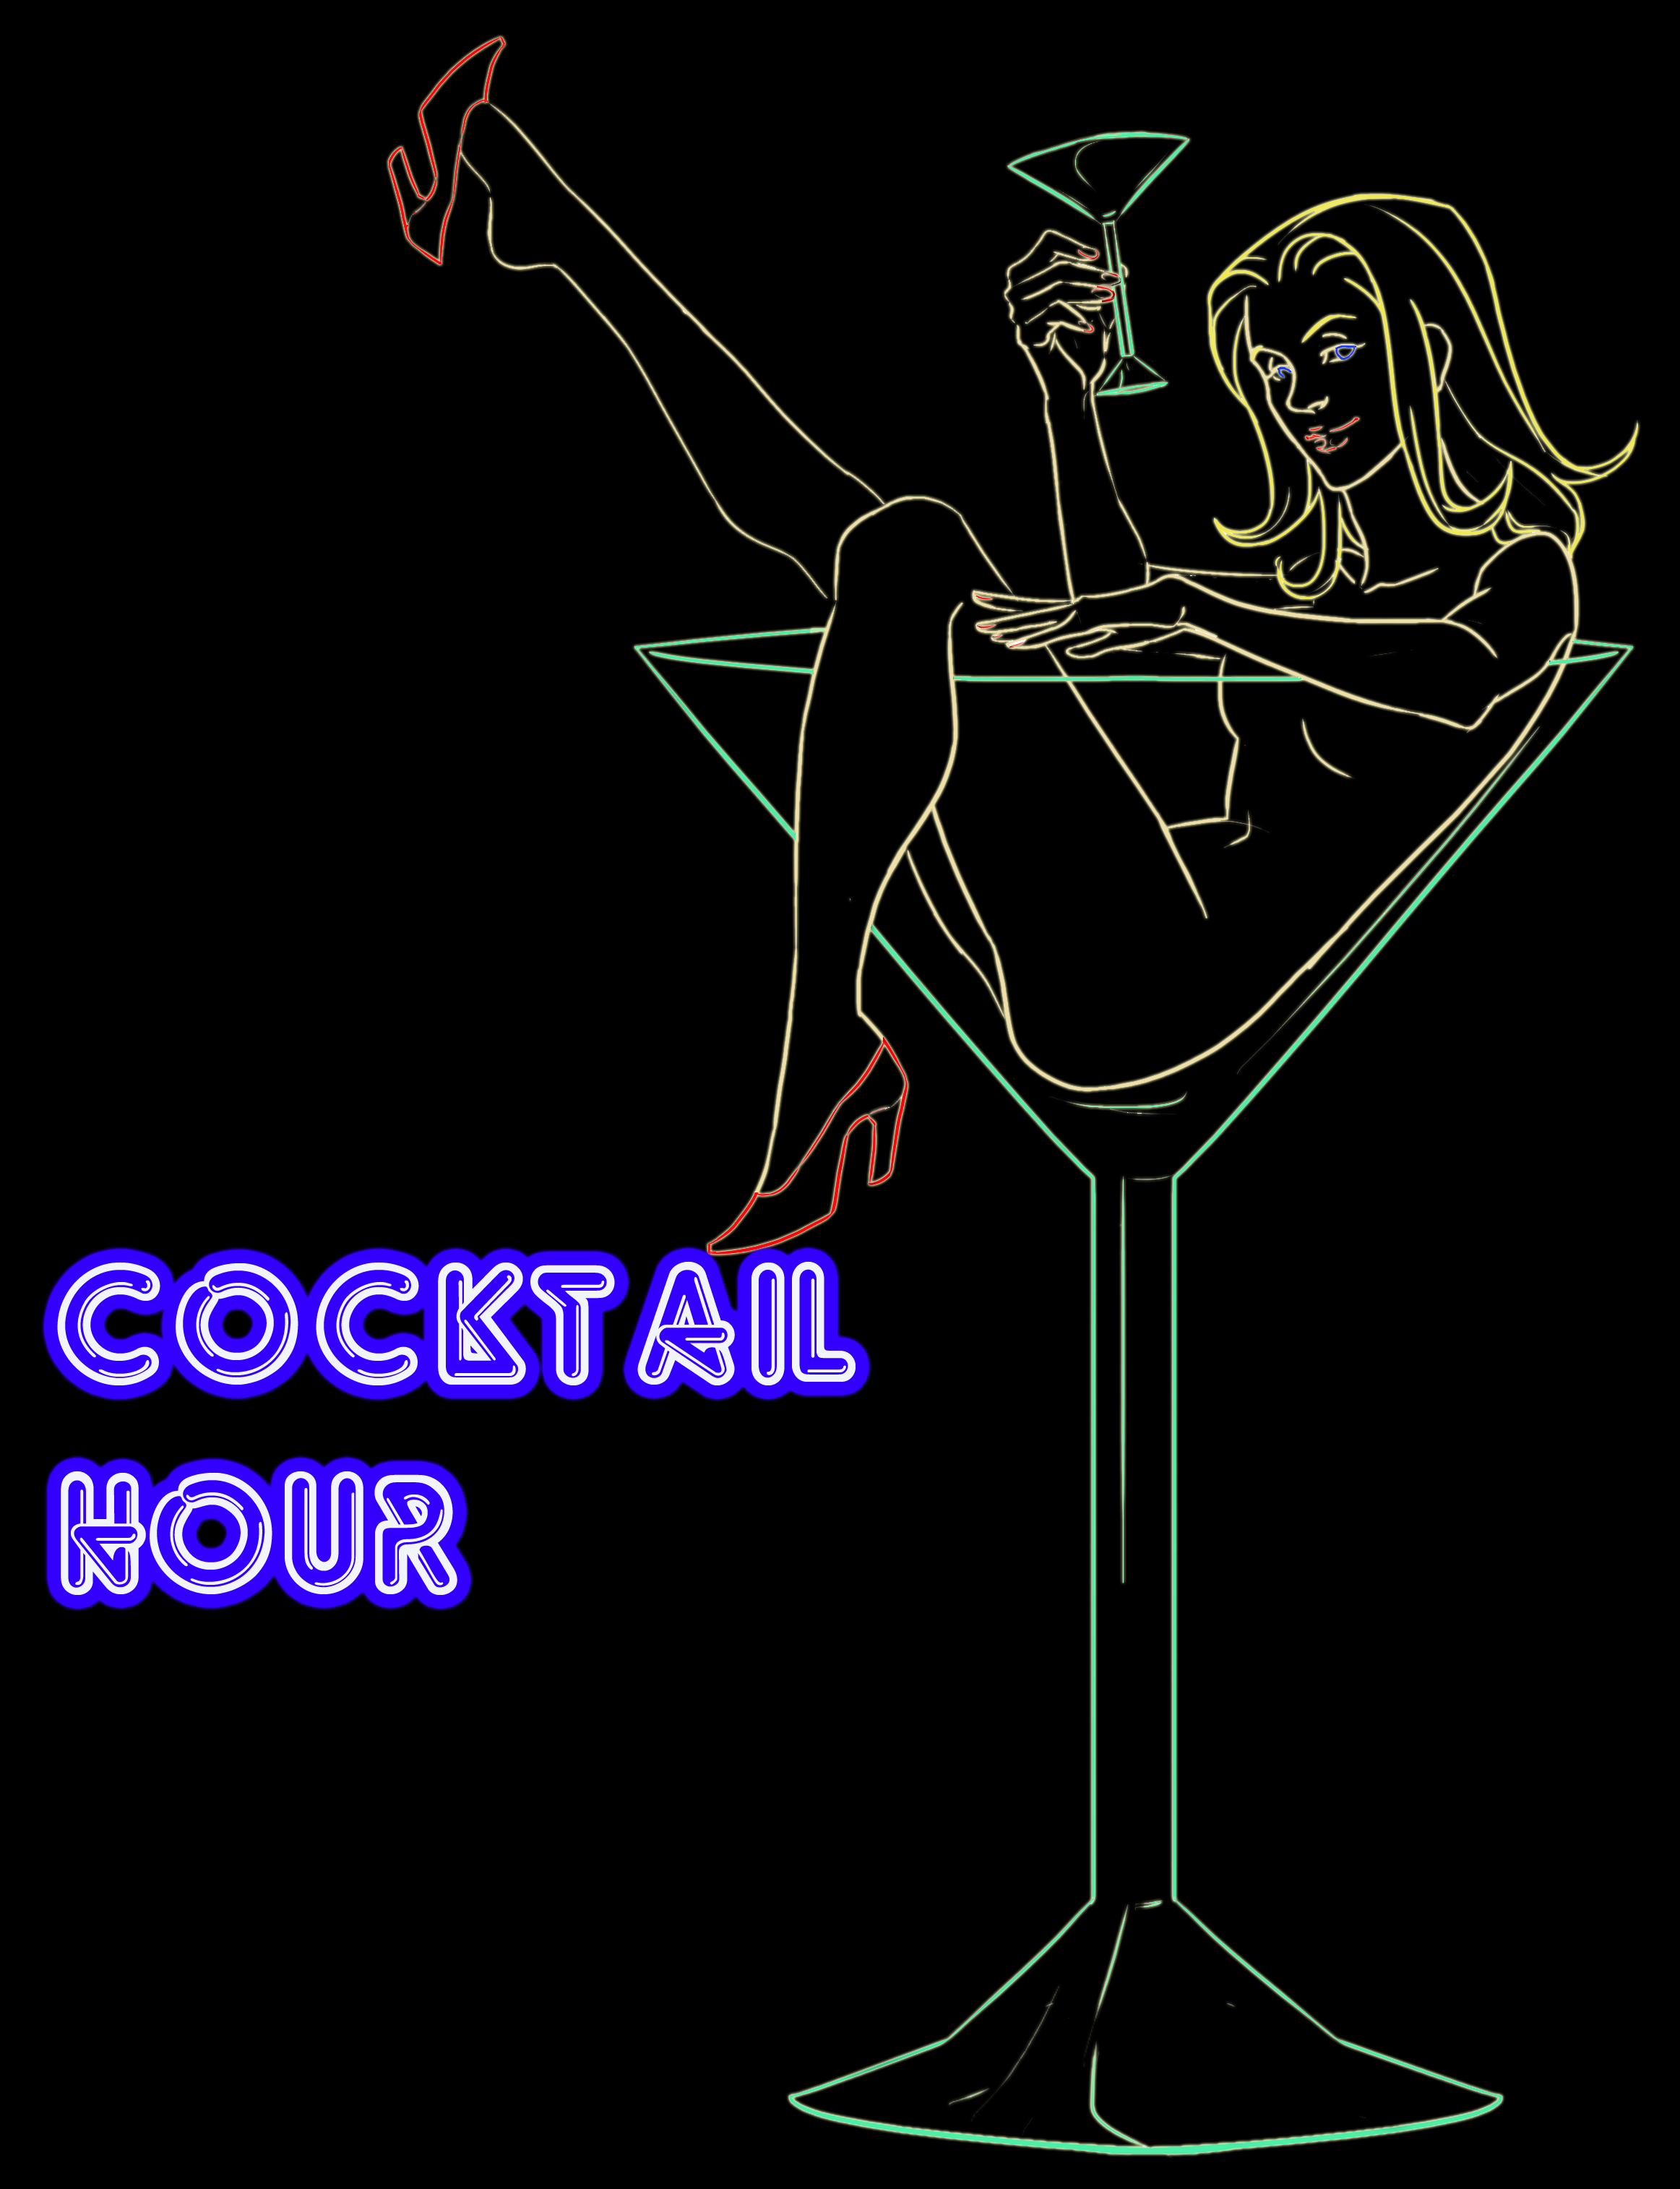 Cocktail Hour Productions